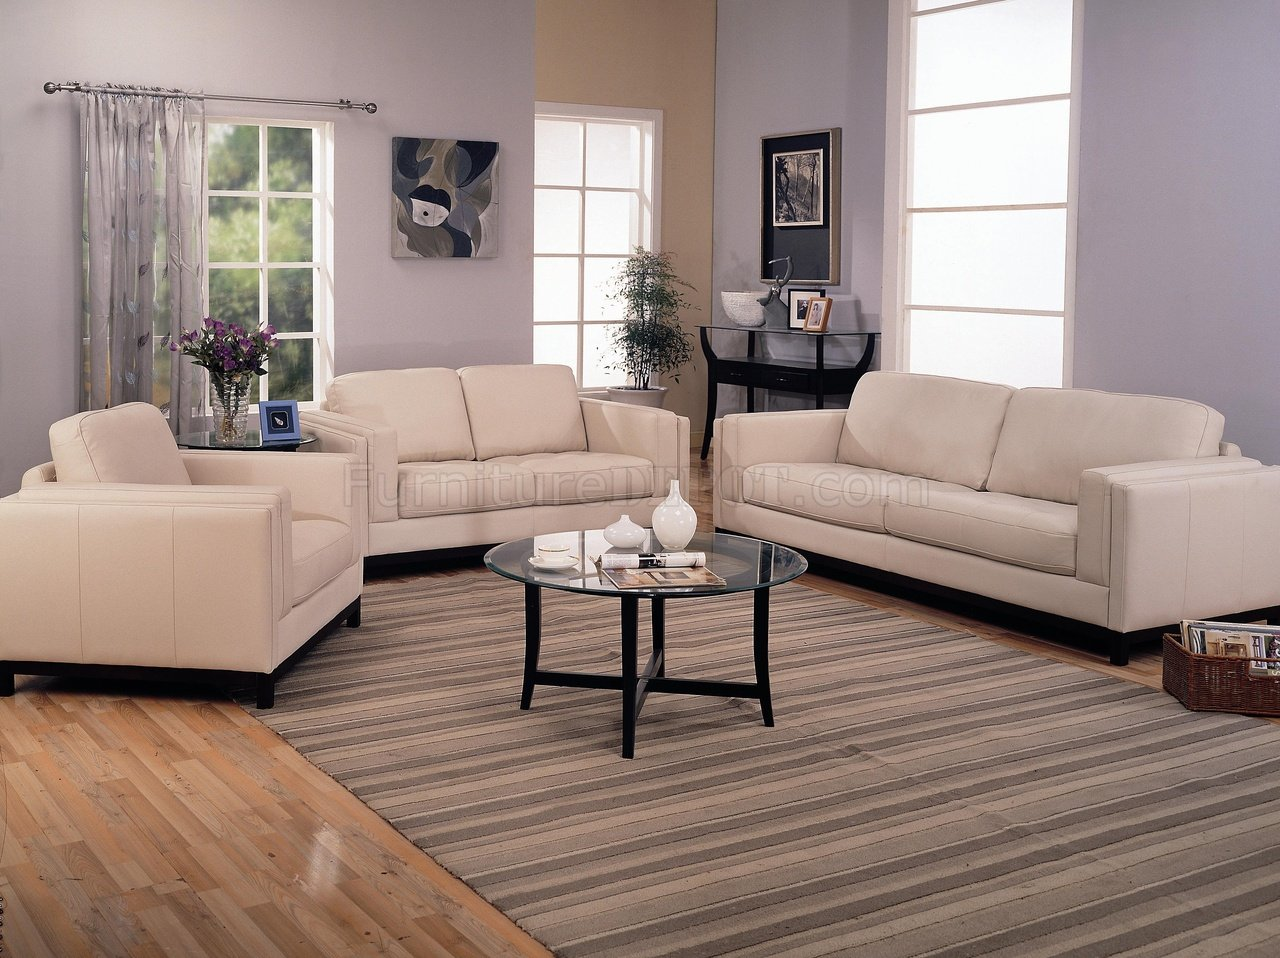 Leather Living Room Furnitures Contemporary Living Room 502461 Cream